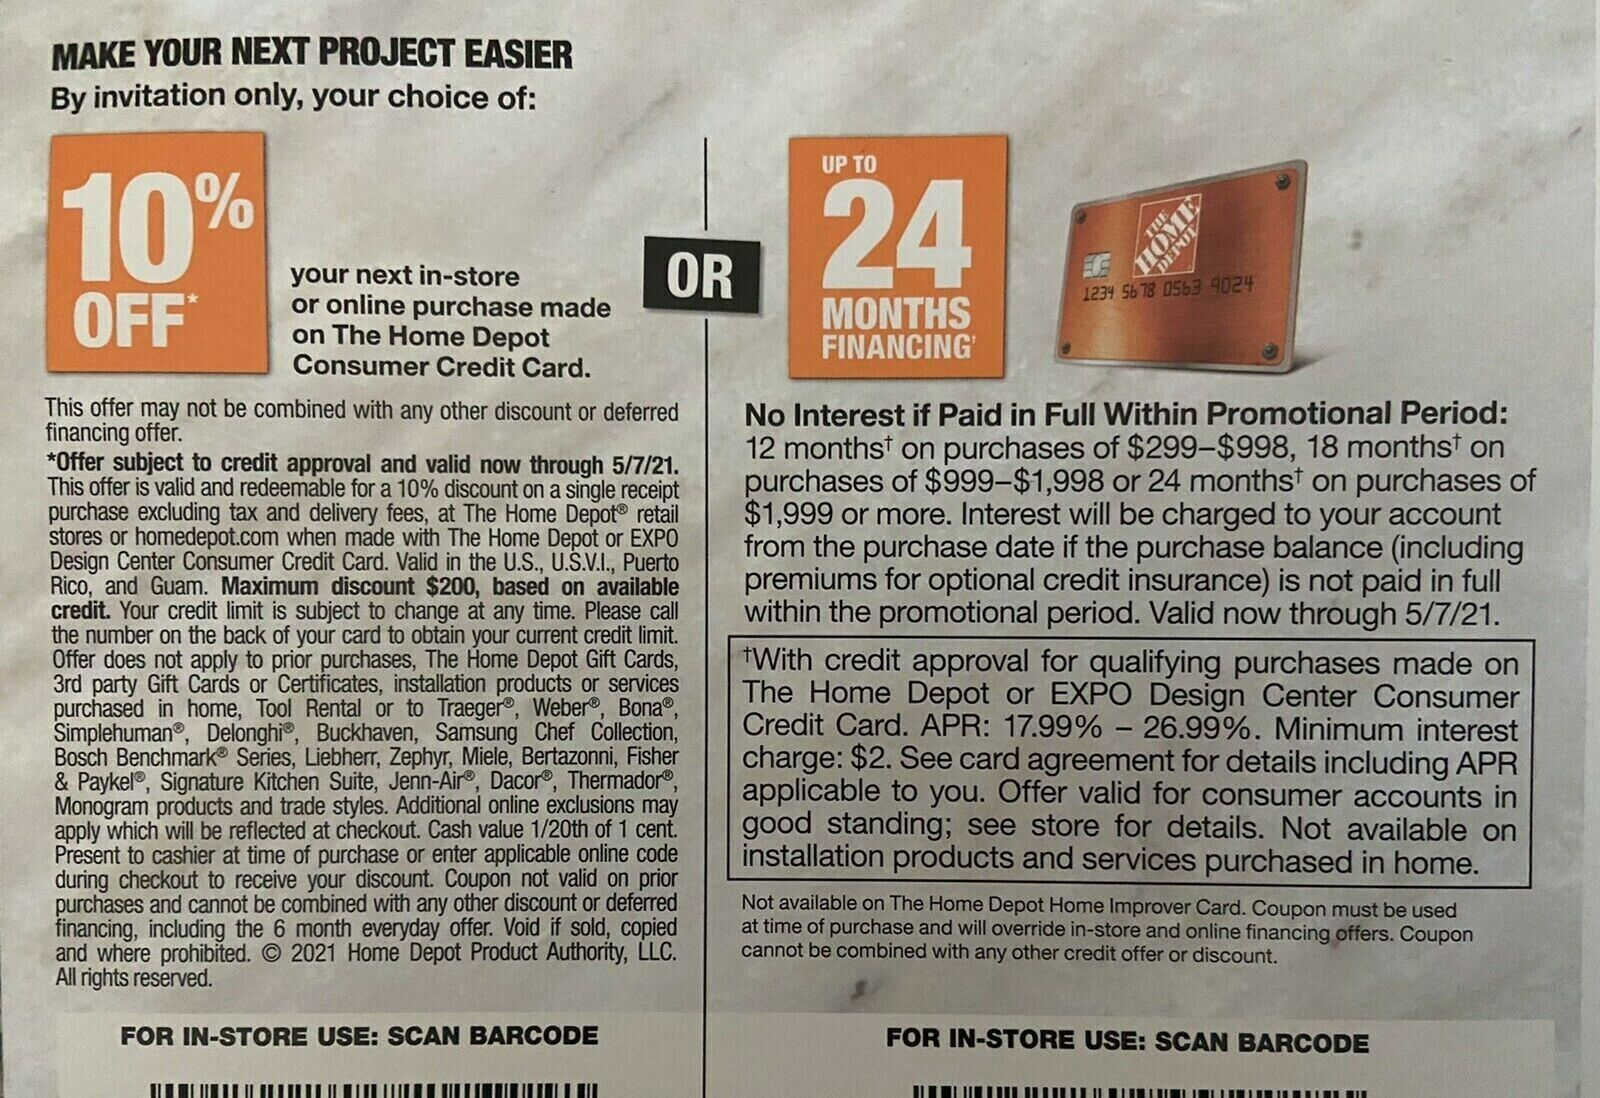 Home Depot Coupon 10 Off Expires 5/7/2021 In Store Or Online W/ Home Depot CC - $19.99